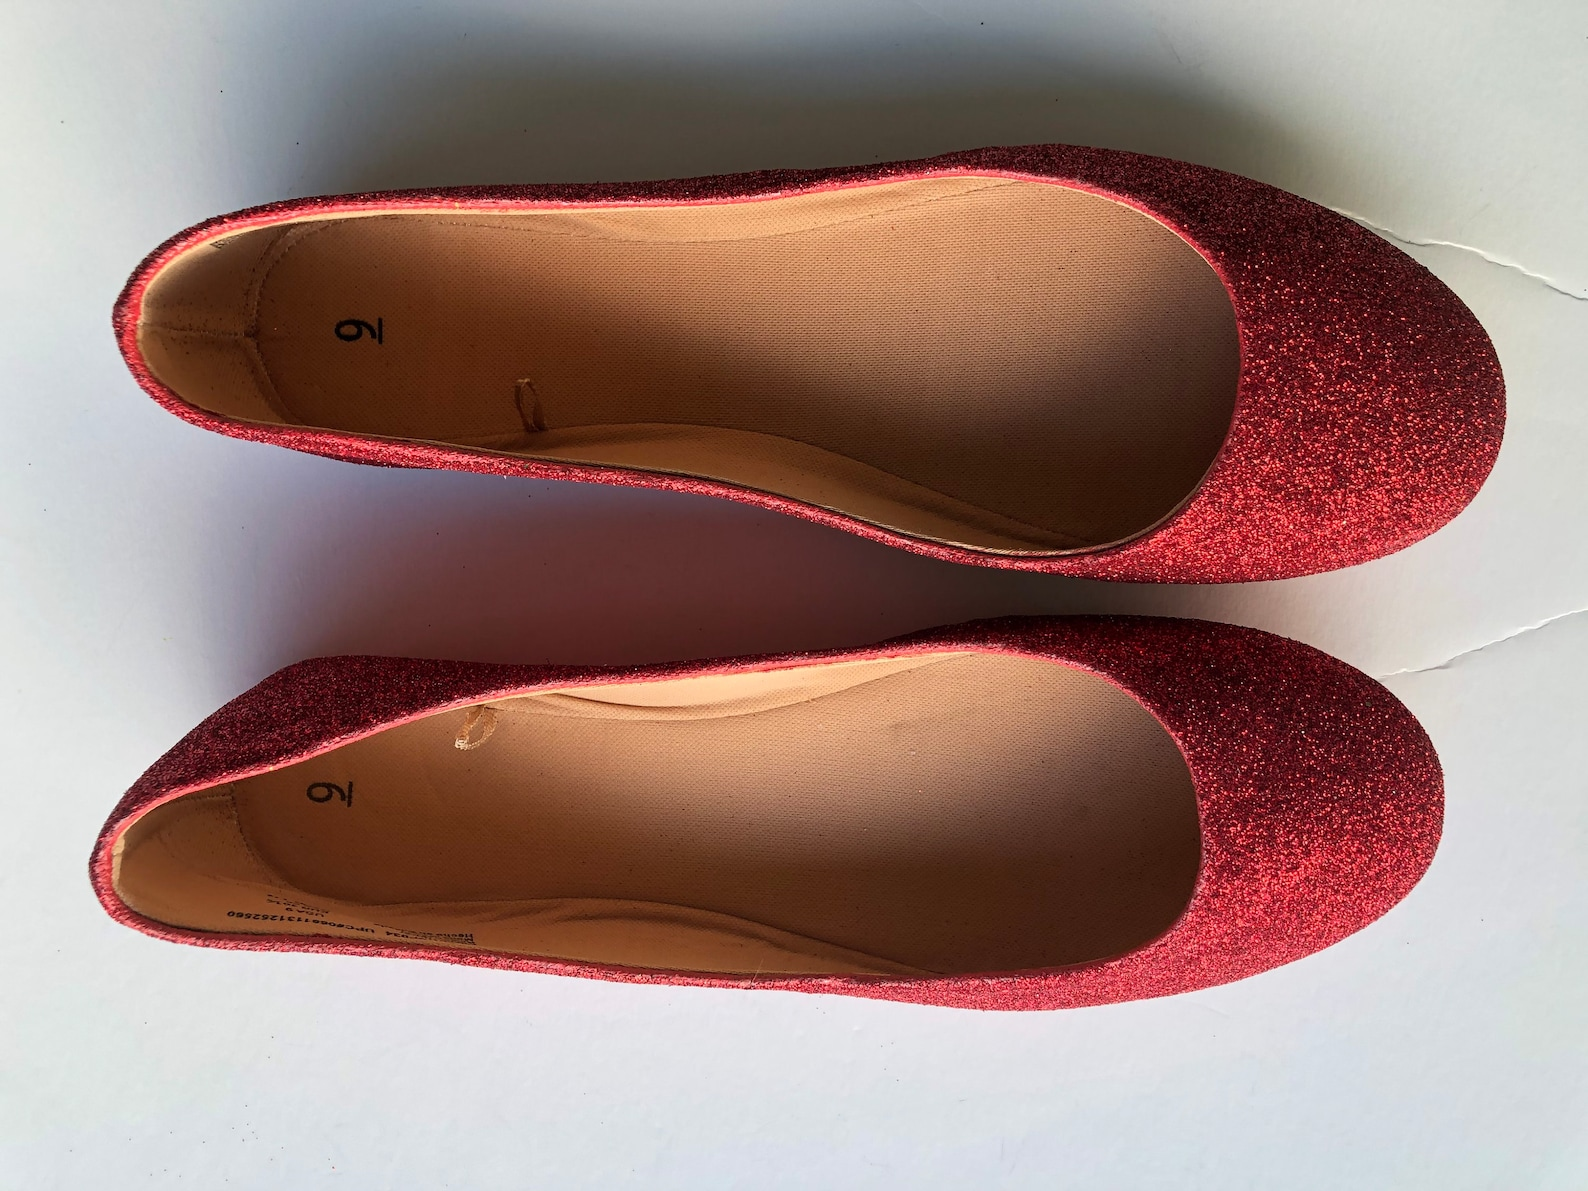 red shoes women's valentine's day gift custom cherry ruby red glitter ballet flats *free u.s. shipping* jco.customs by k